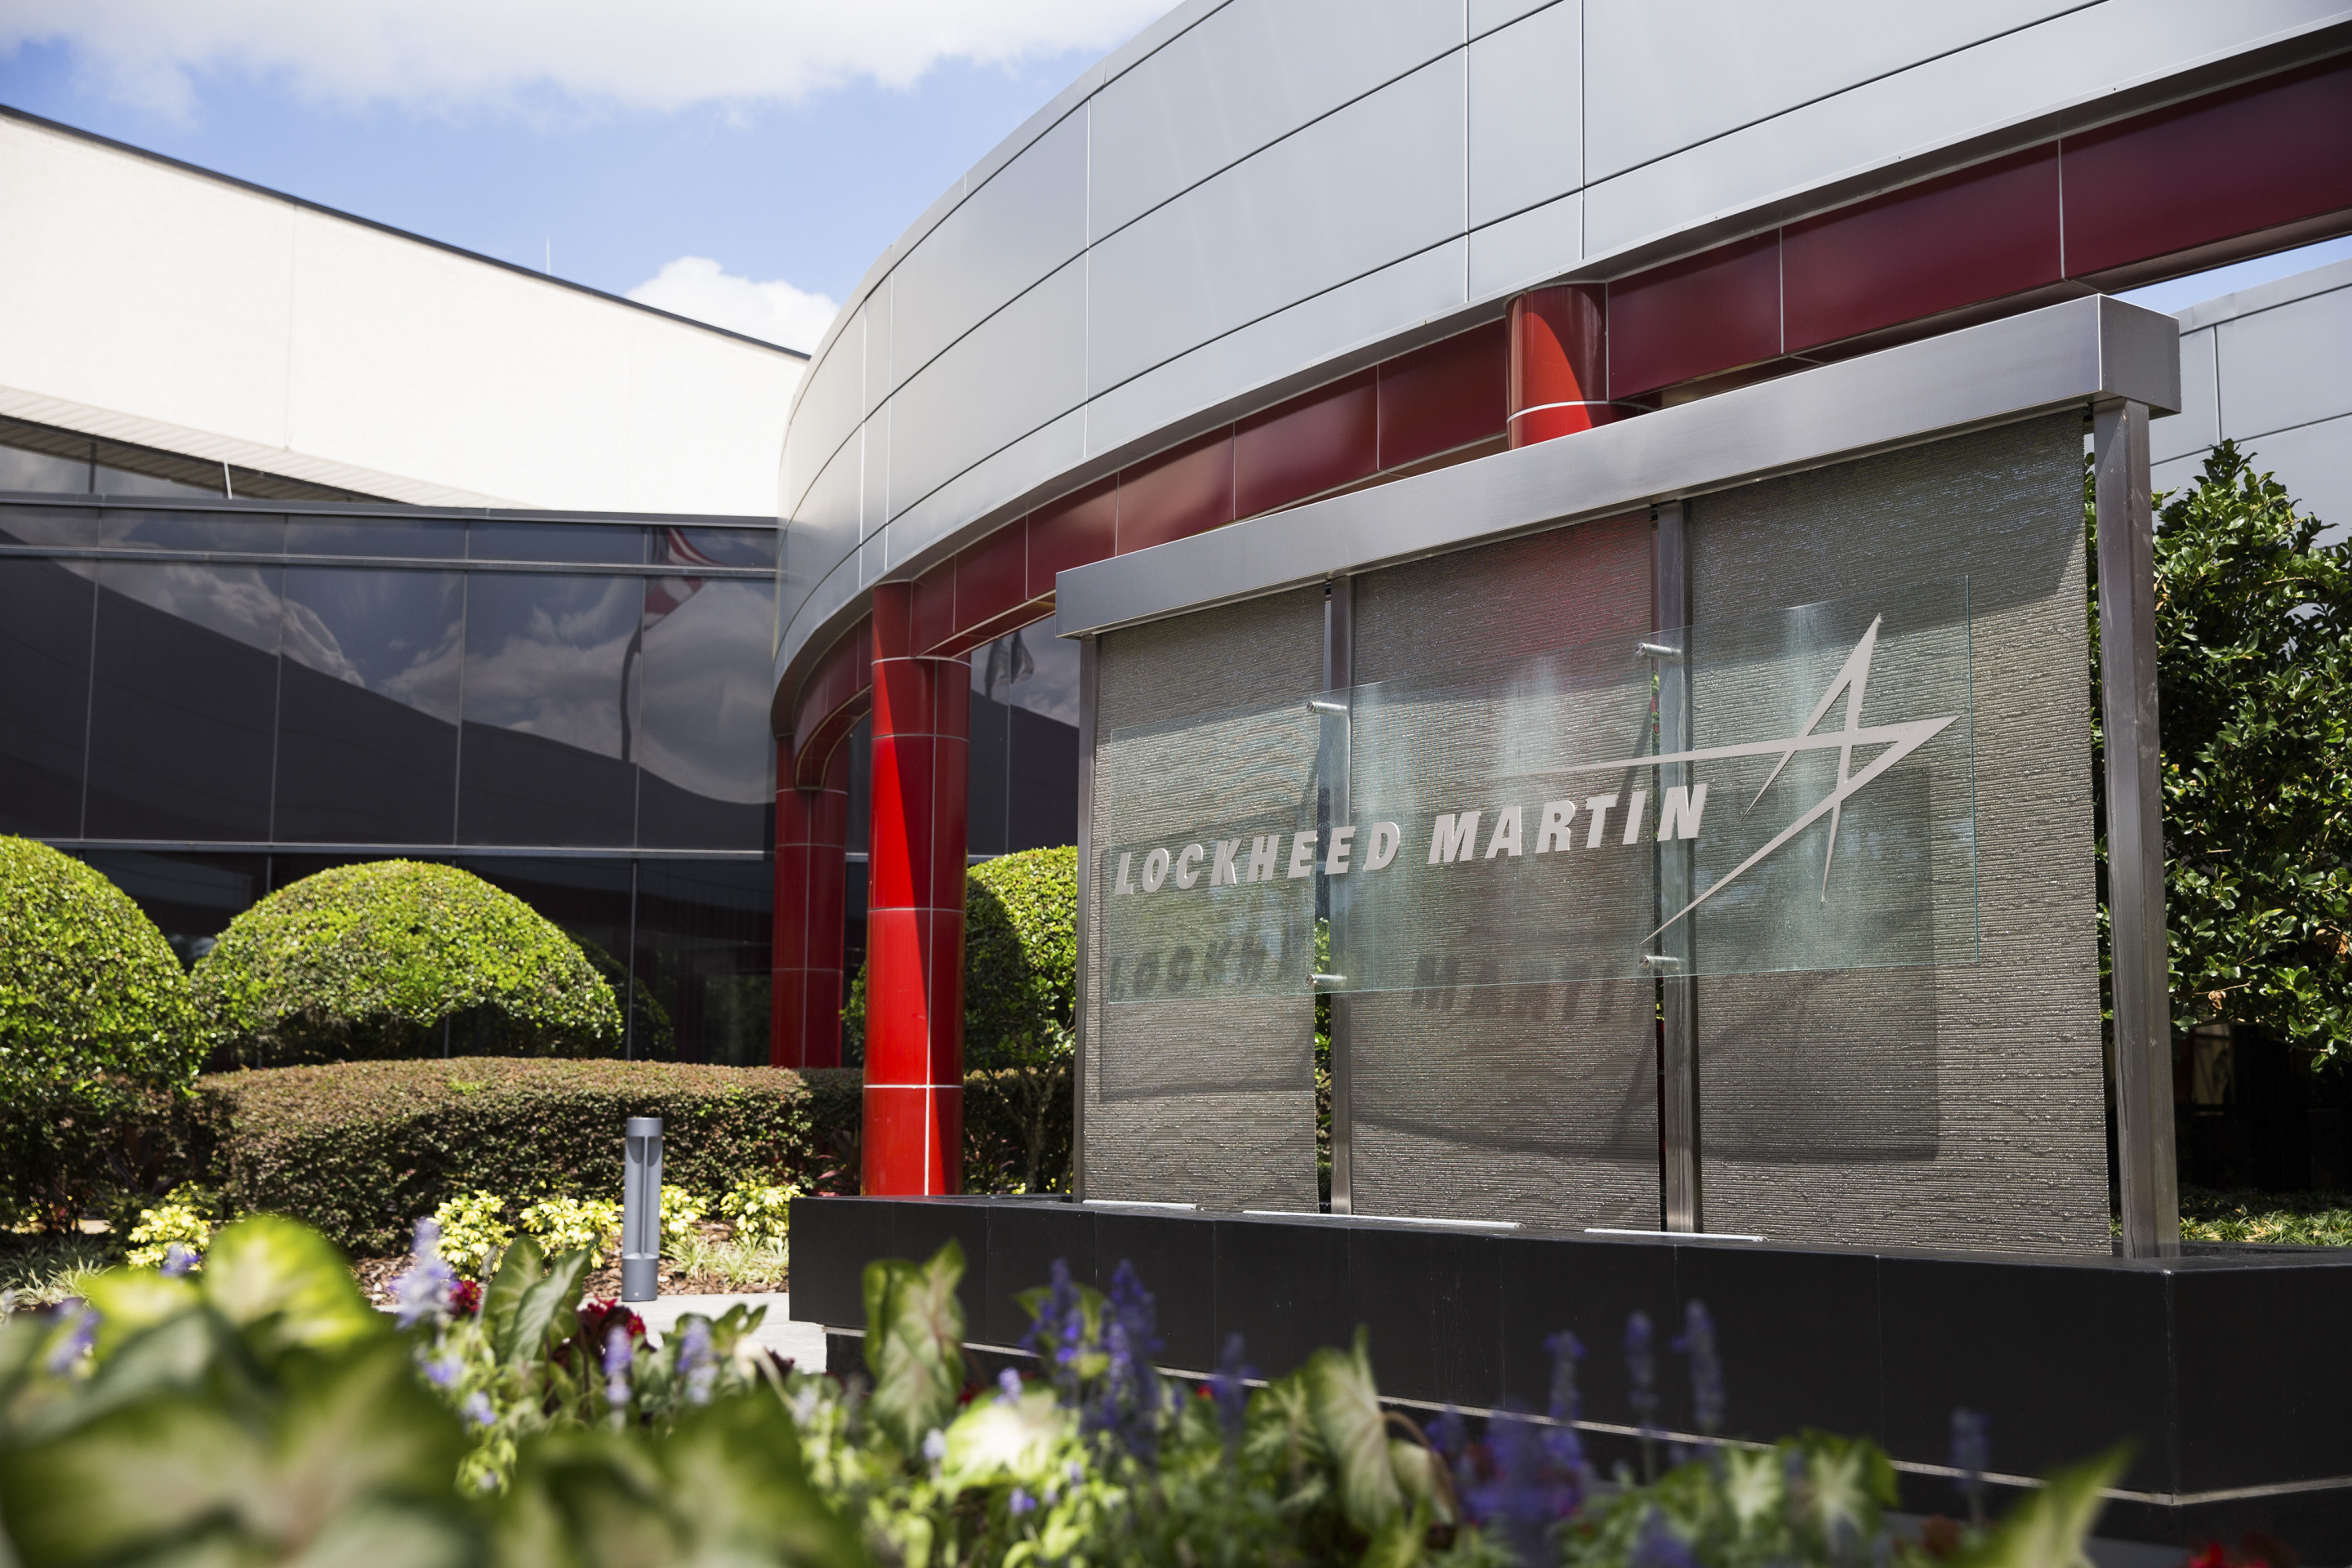 ORLANDO, FLA. - June 5, 2015 - The Innovation Demonstration Center at Lockheed Martin's Orlando complex houses multiple training and flight simulators, displays and the F-35 Experience.  - (PHOTO / Edward Linsmier/Bloomberg)